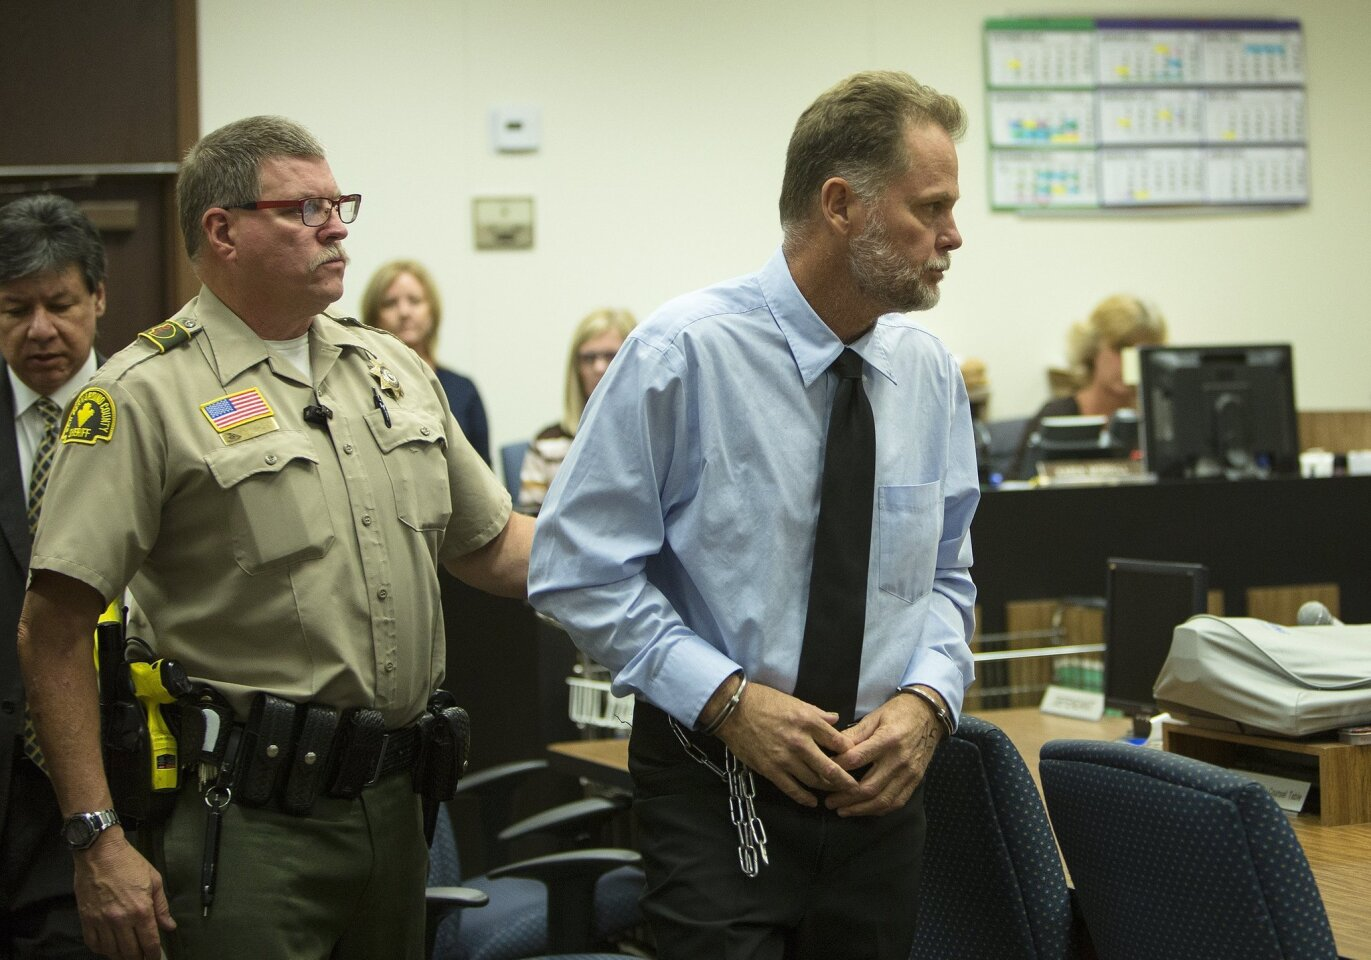 Charles Merritt is led out of the courtroom after his arraignment, where he pleaded not guilty in the slayings of the McStay family.